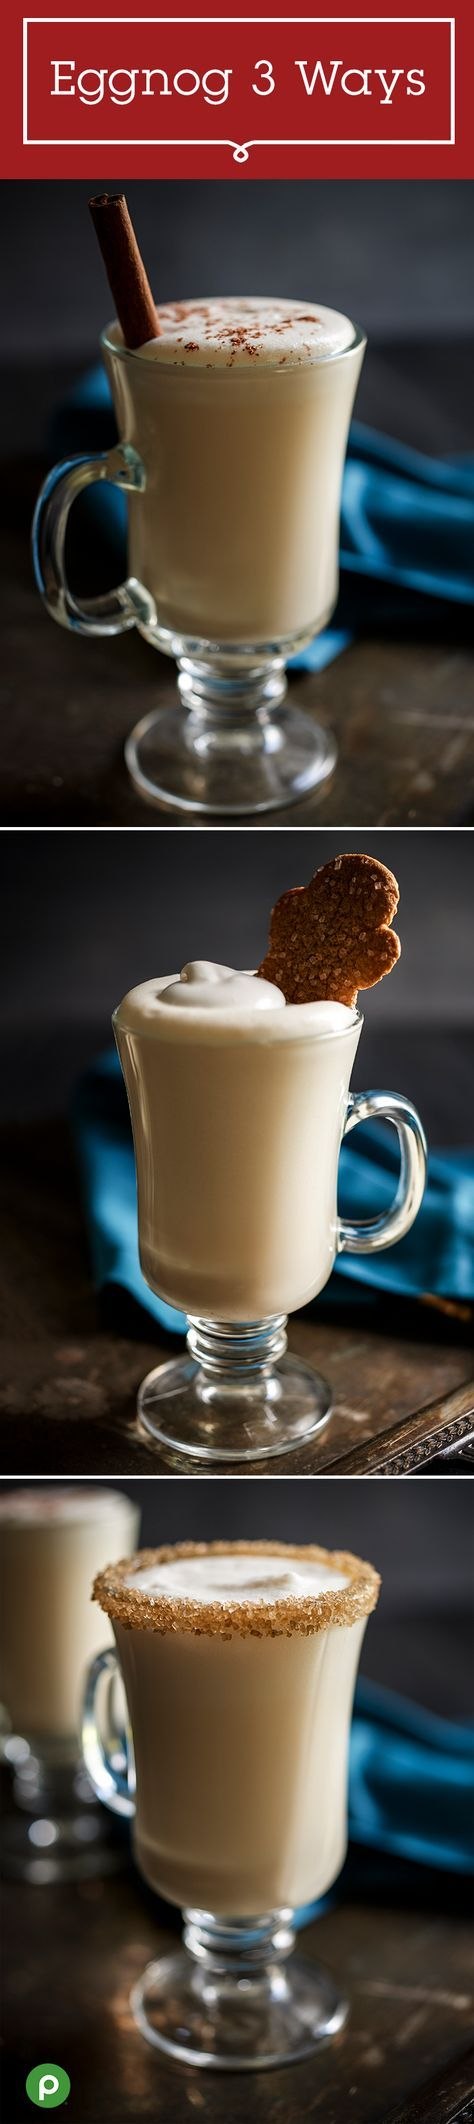 Enjoy three unique twists on a traditional Christmas eggnog with this Publix recipe for Eggnog Garnishes. Make yours with nutmeg, cinnamon, and whipped topping, or try whipped topping with a gingerbread cookie. Or keep it classy with whipped topping rimmed with sugar. Make all three and let your guests pick their favorite.